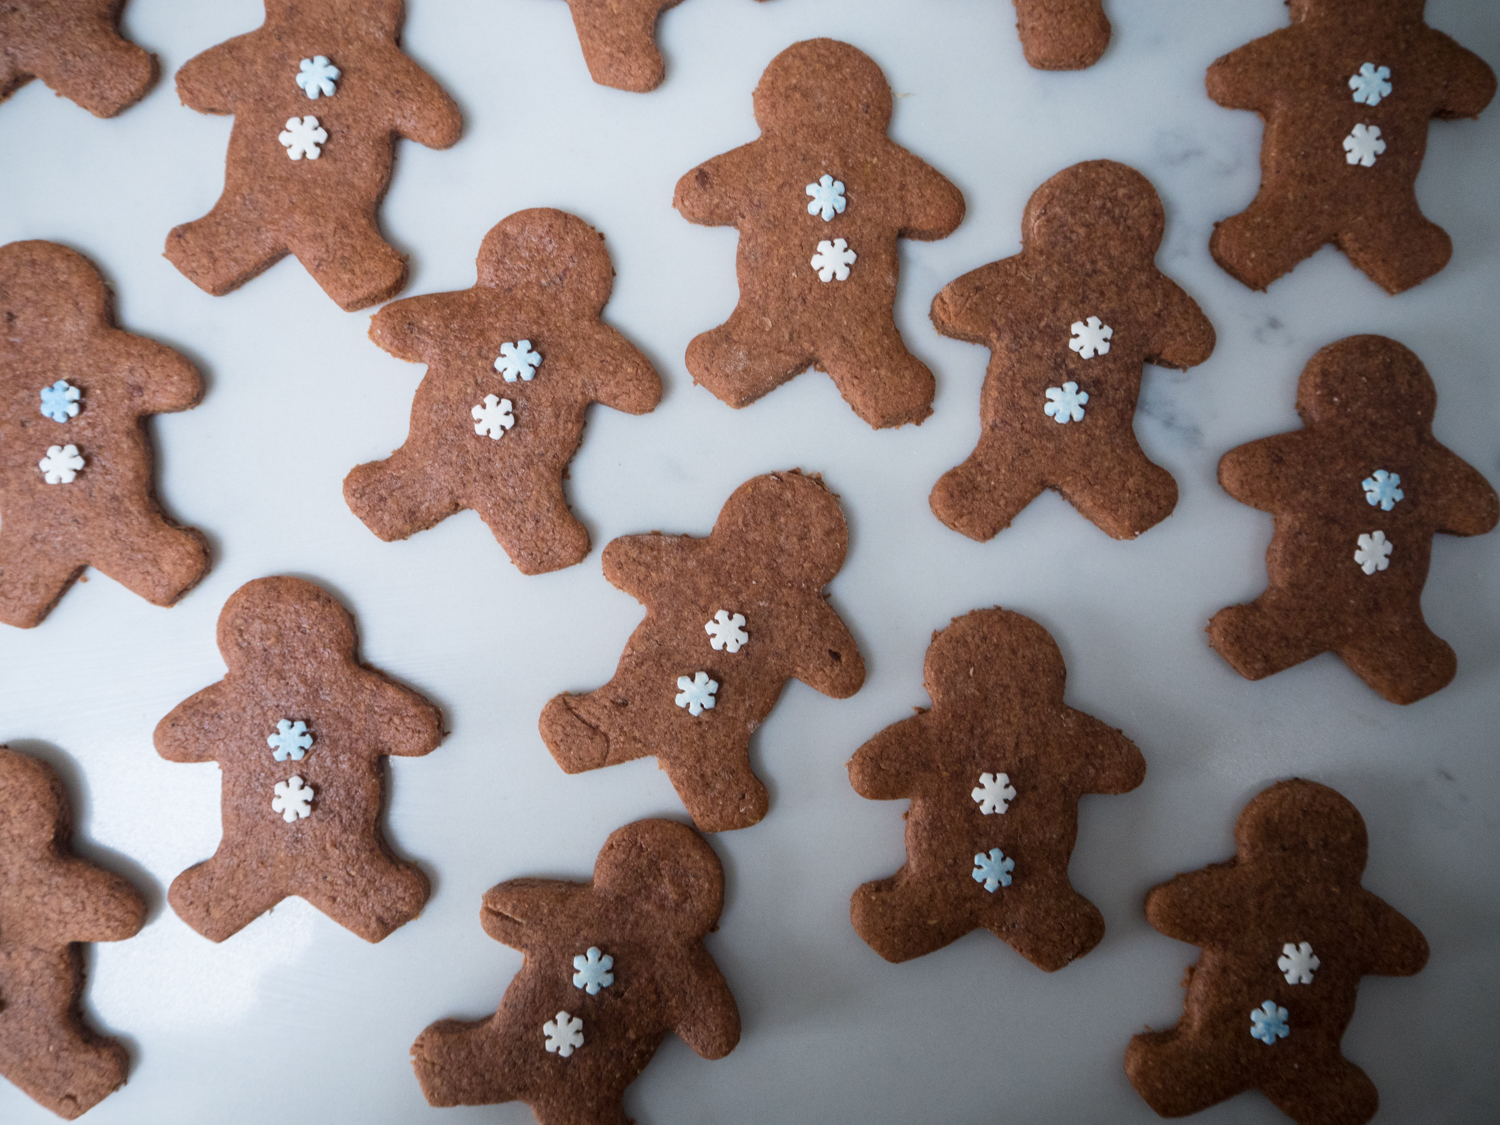 gingerbread men-270035.jpg